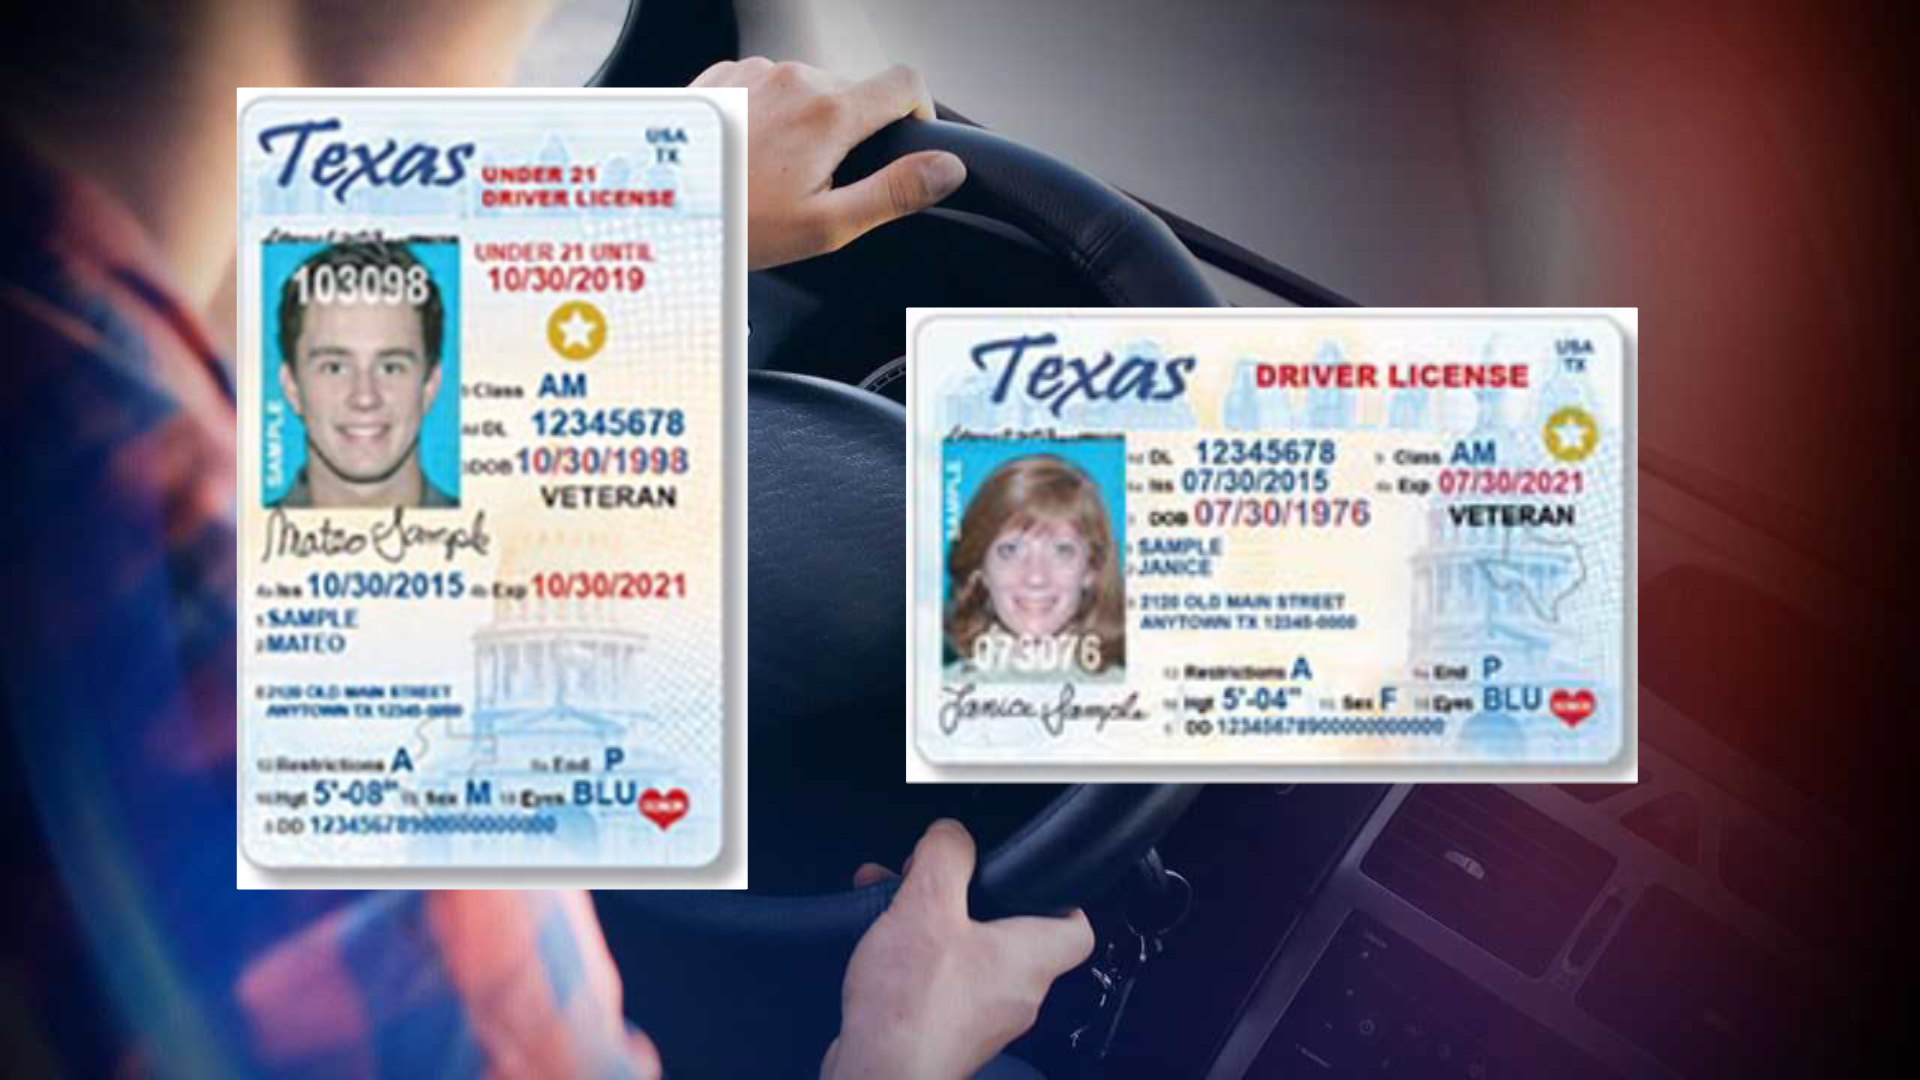 REAL ID act affecting Texas residents, new requirements for renewing a Texas  ID